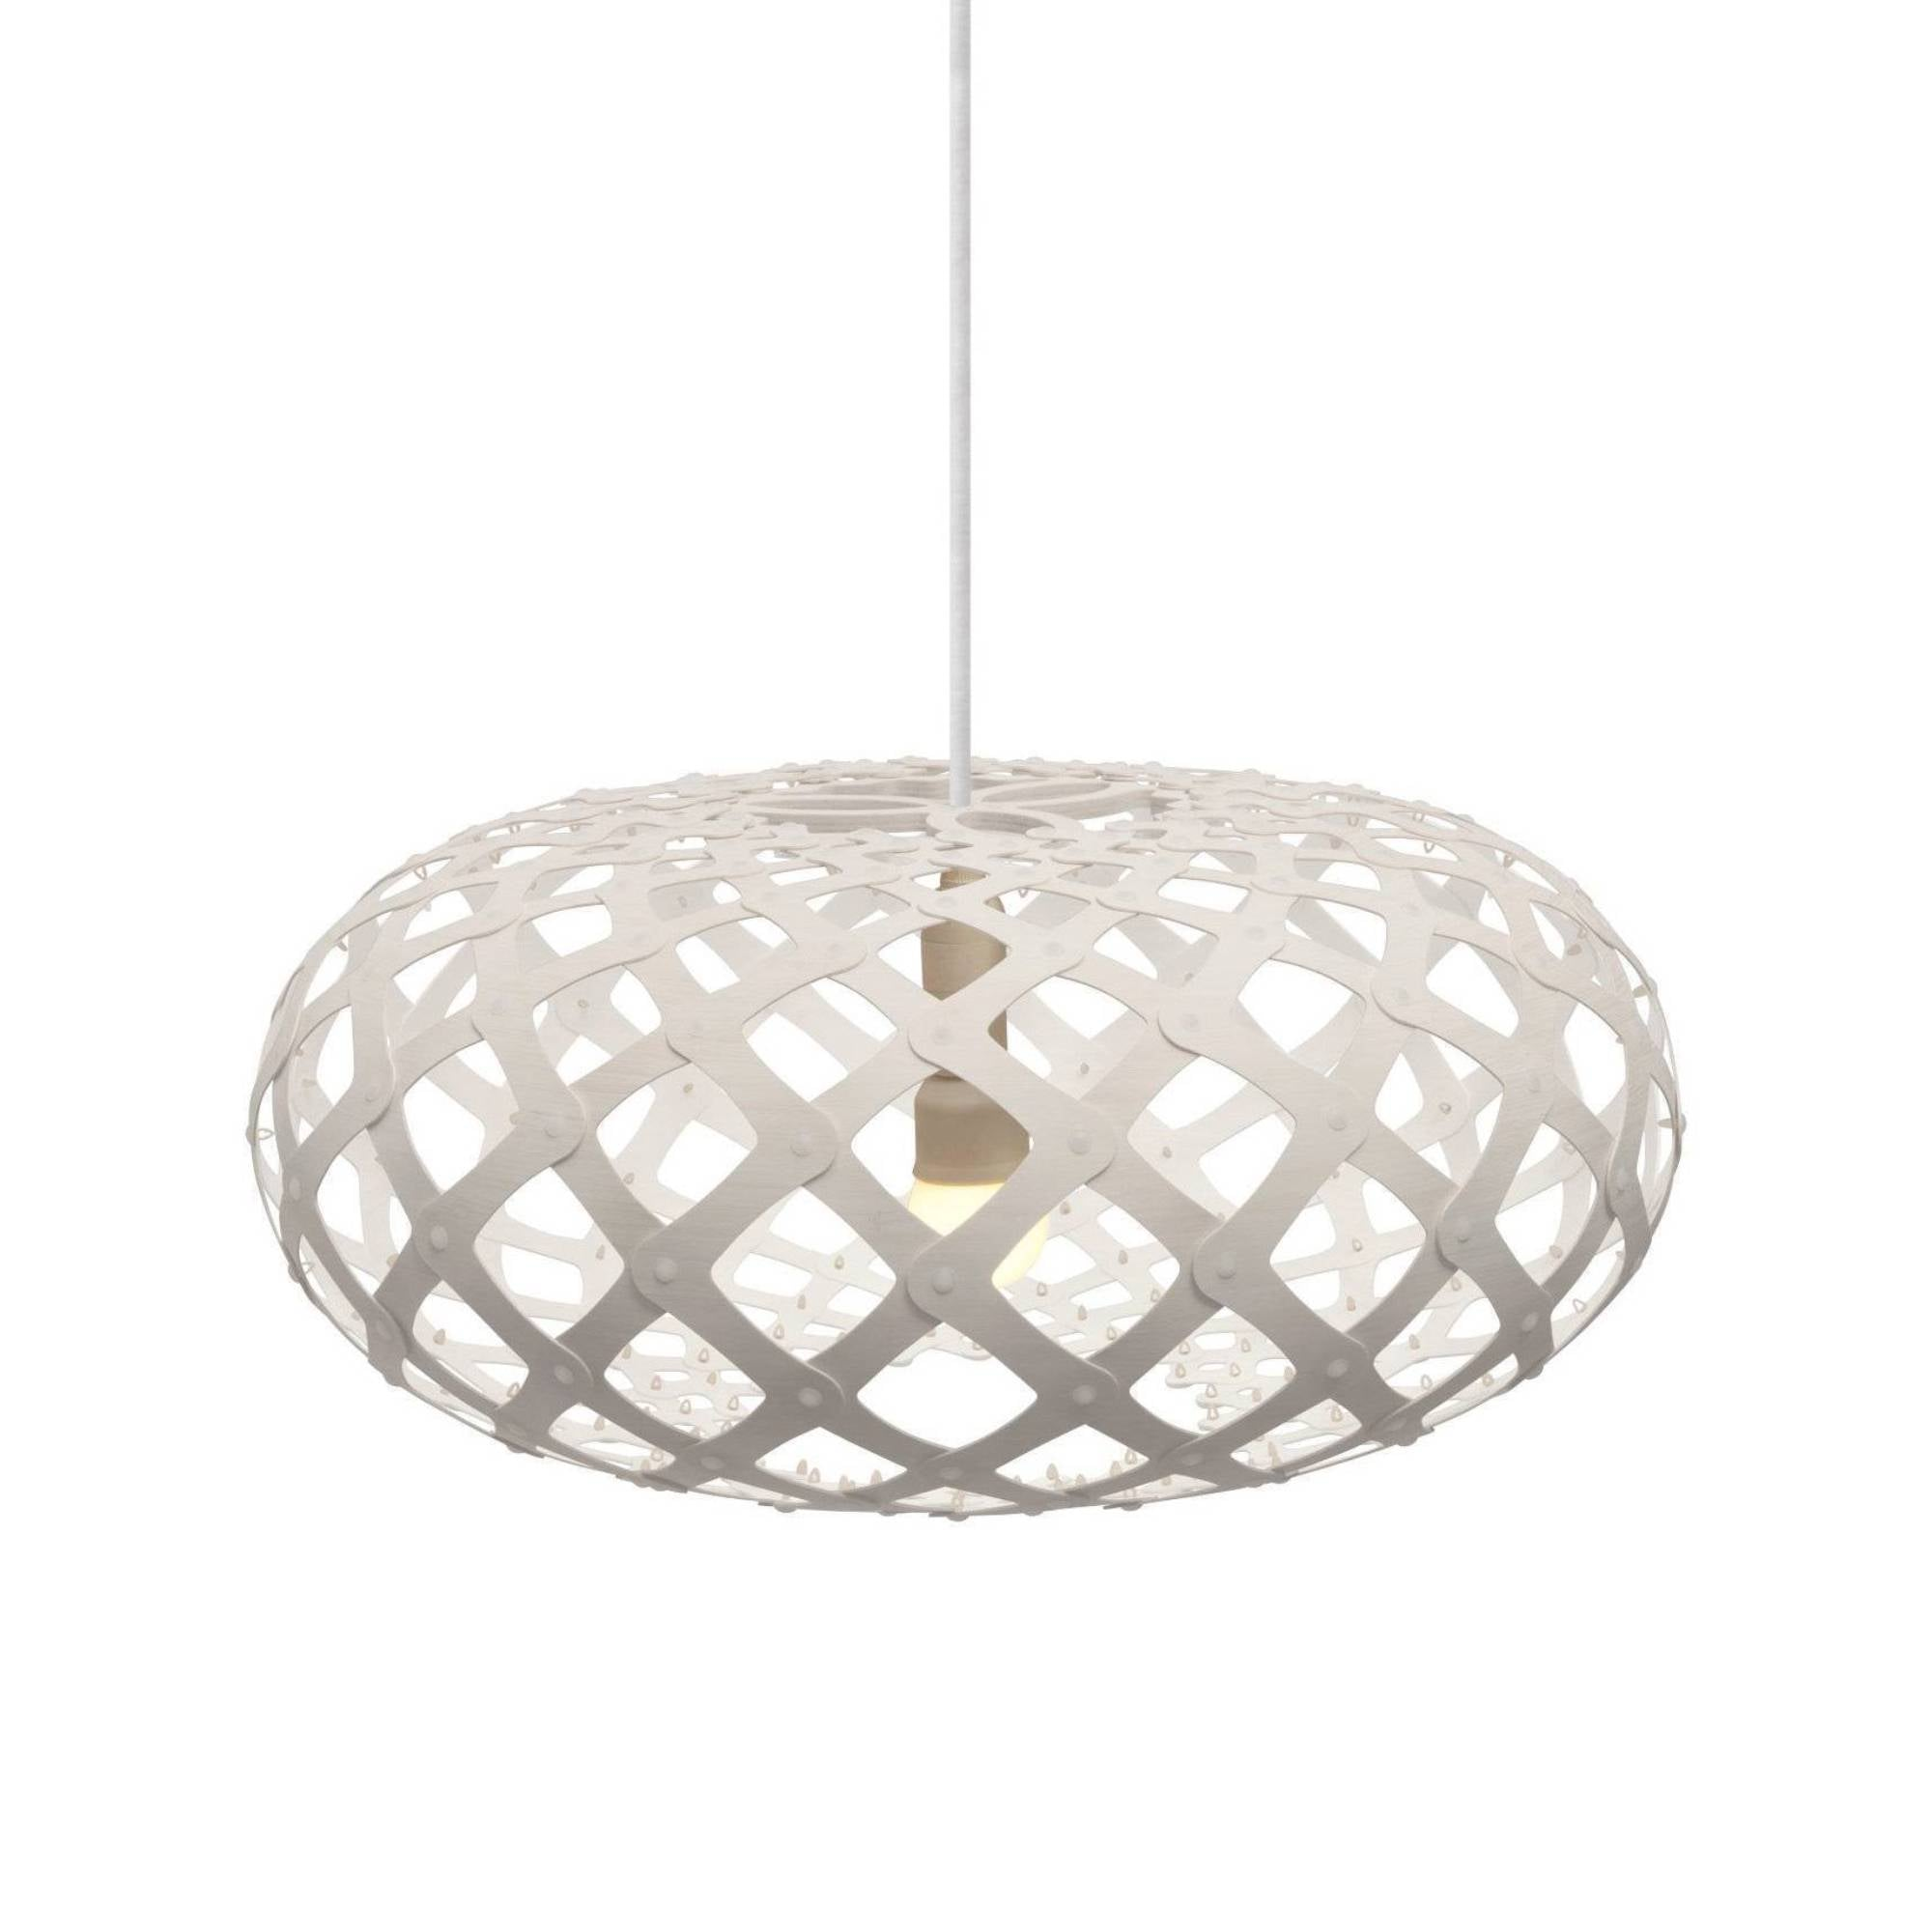 Kina Pendant Light: 600 + White Two Sides